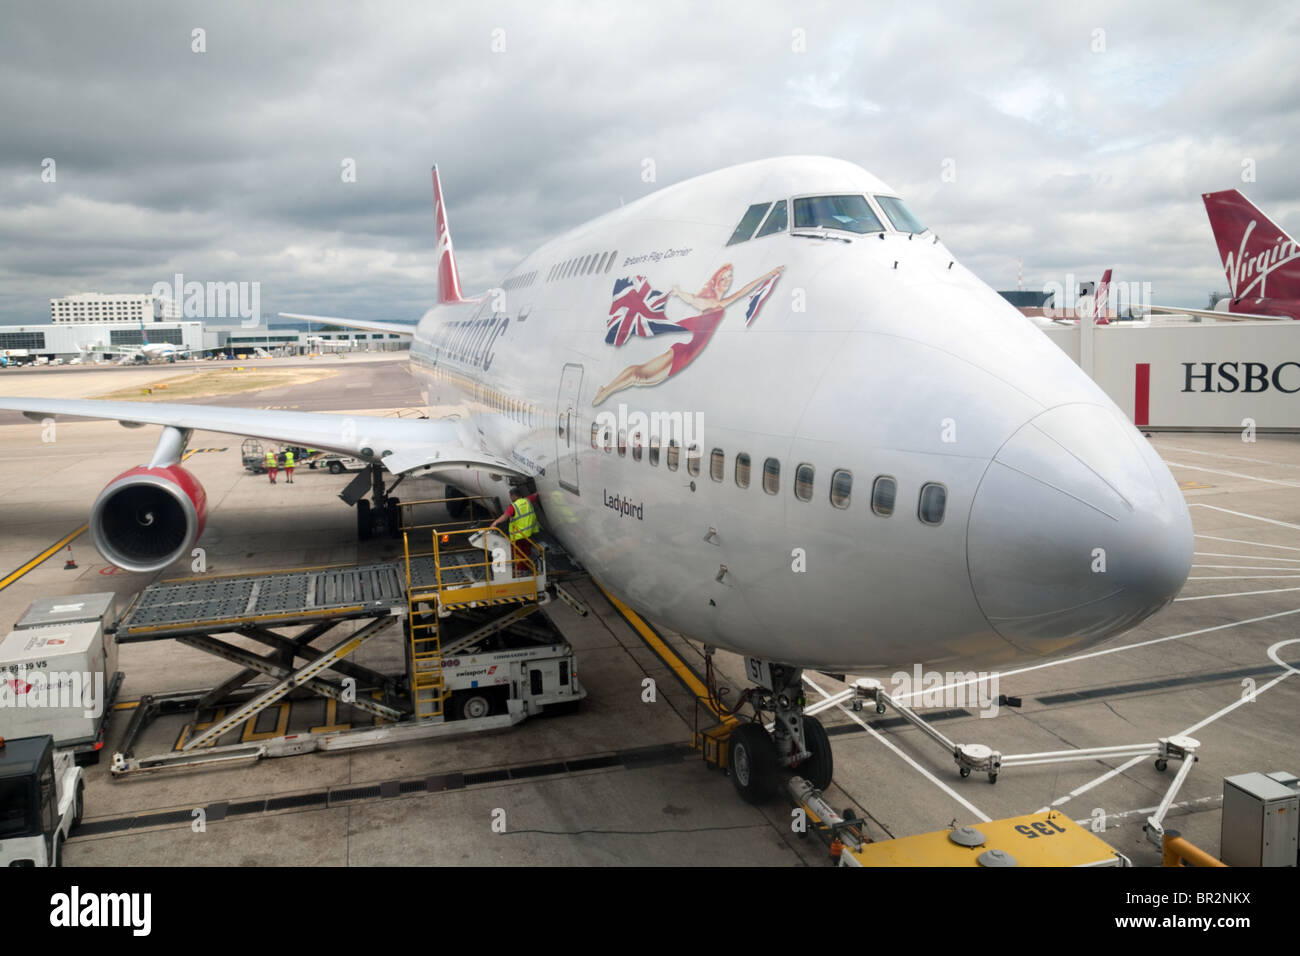 Virgin Atlantic Boeing 747 on the tarmac at South terminal, Gatwick airport, UK - Stock Image